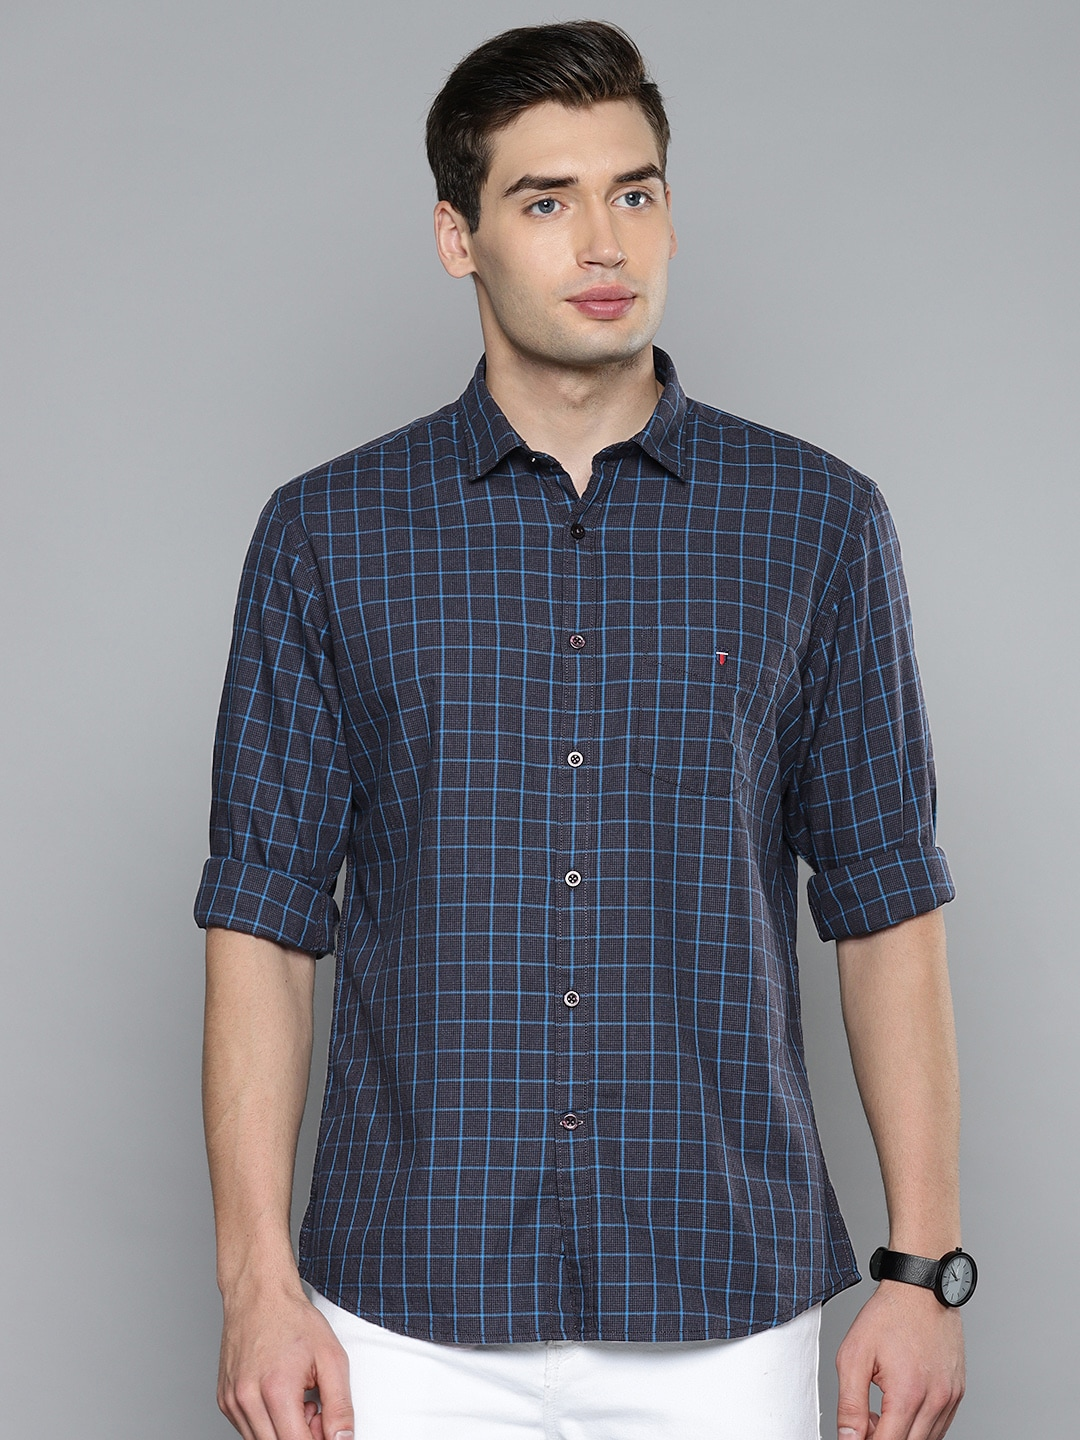 7d0e83589b5 Slim Fit Shirts